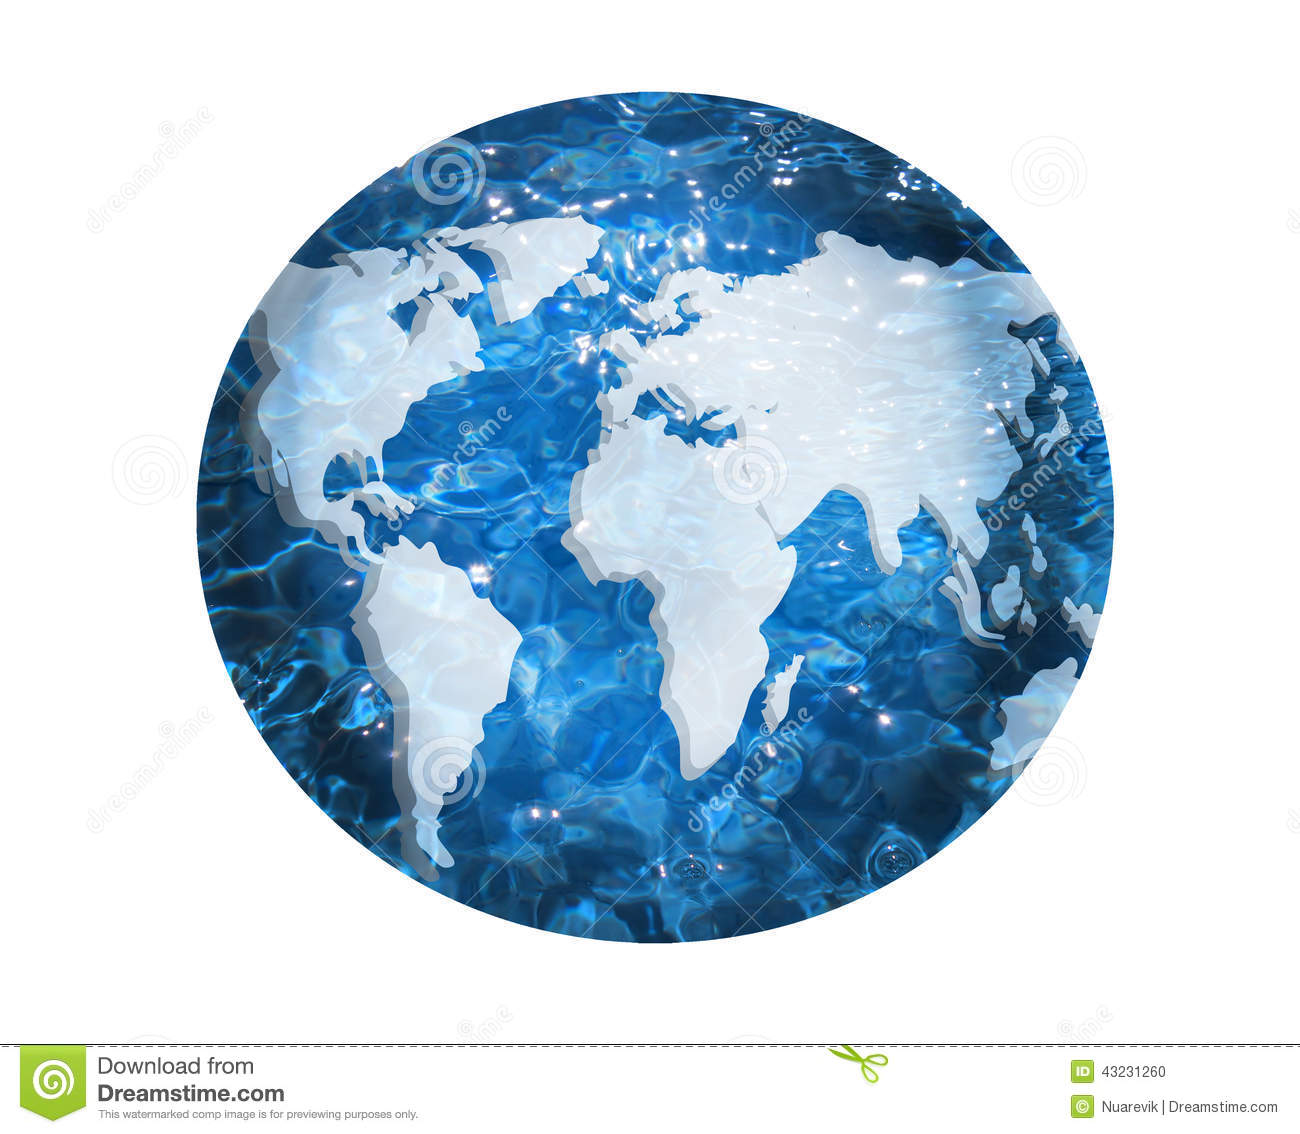 World map globe stock illustration illustration of illustration world map globe royalty free illustration download gumiabroncs Image collections